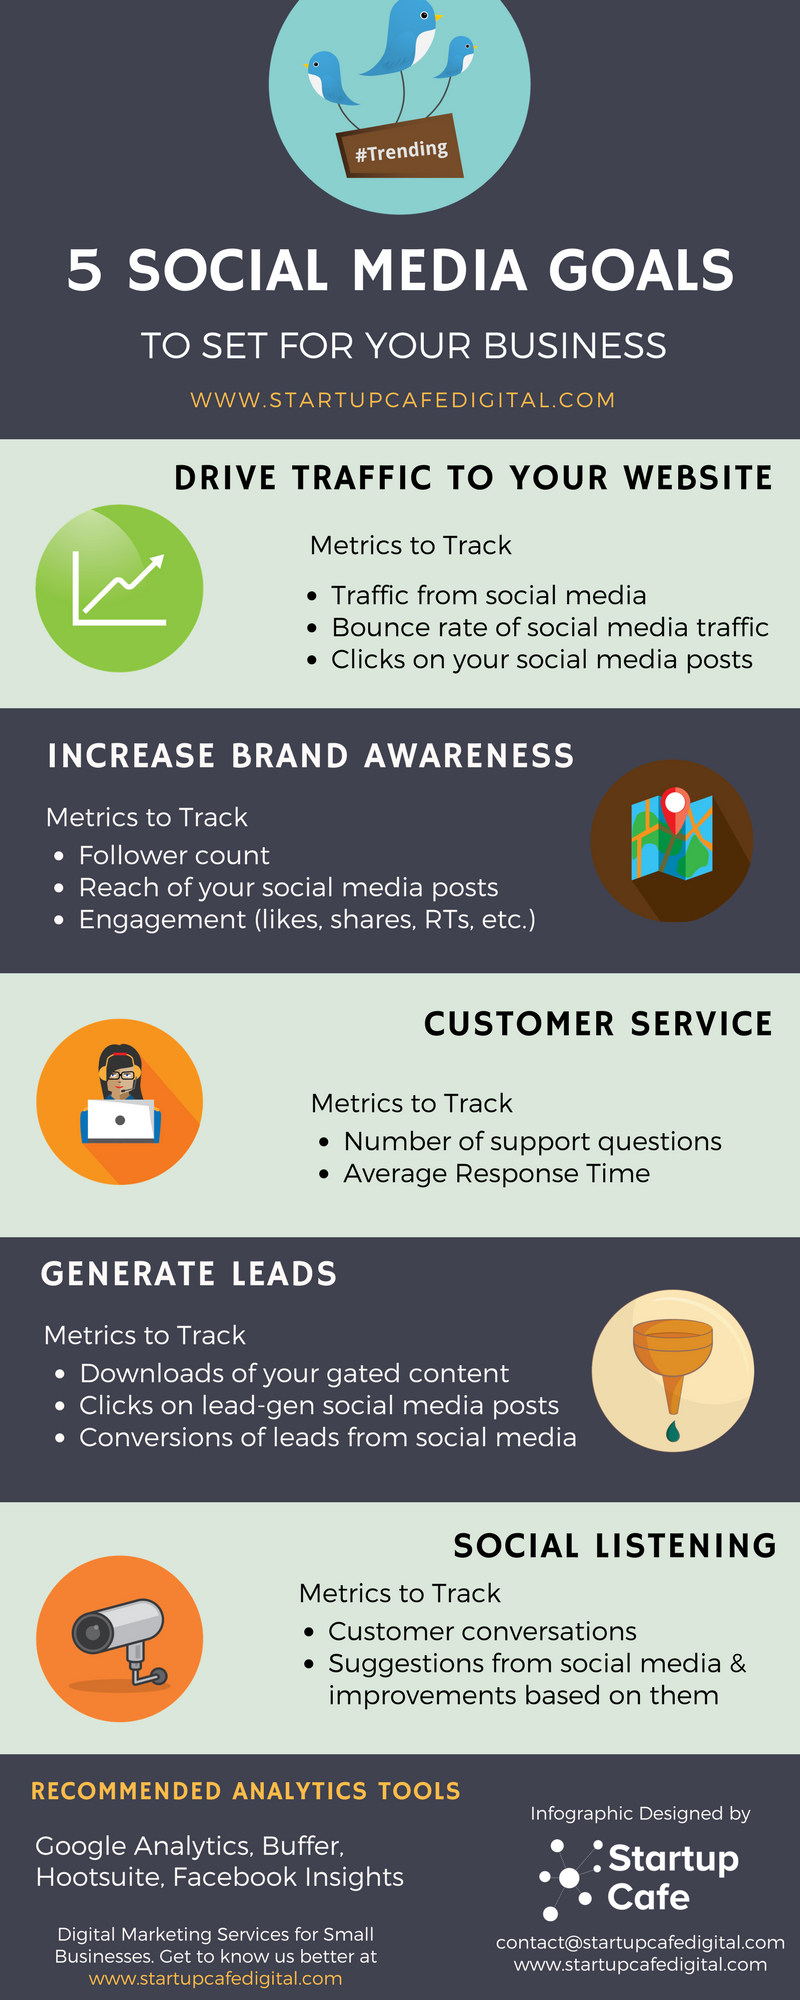 5 Social Media Goals to Set for Your Business [Infographic]